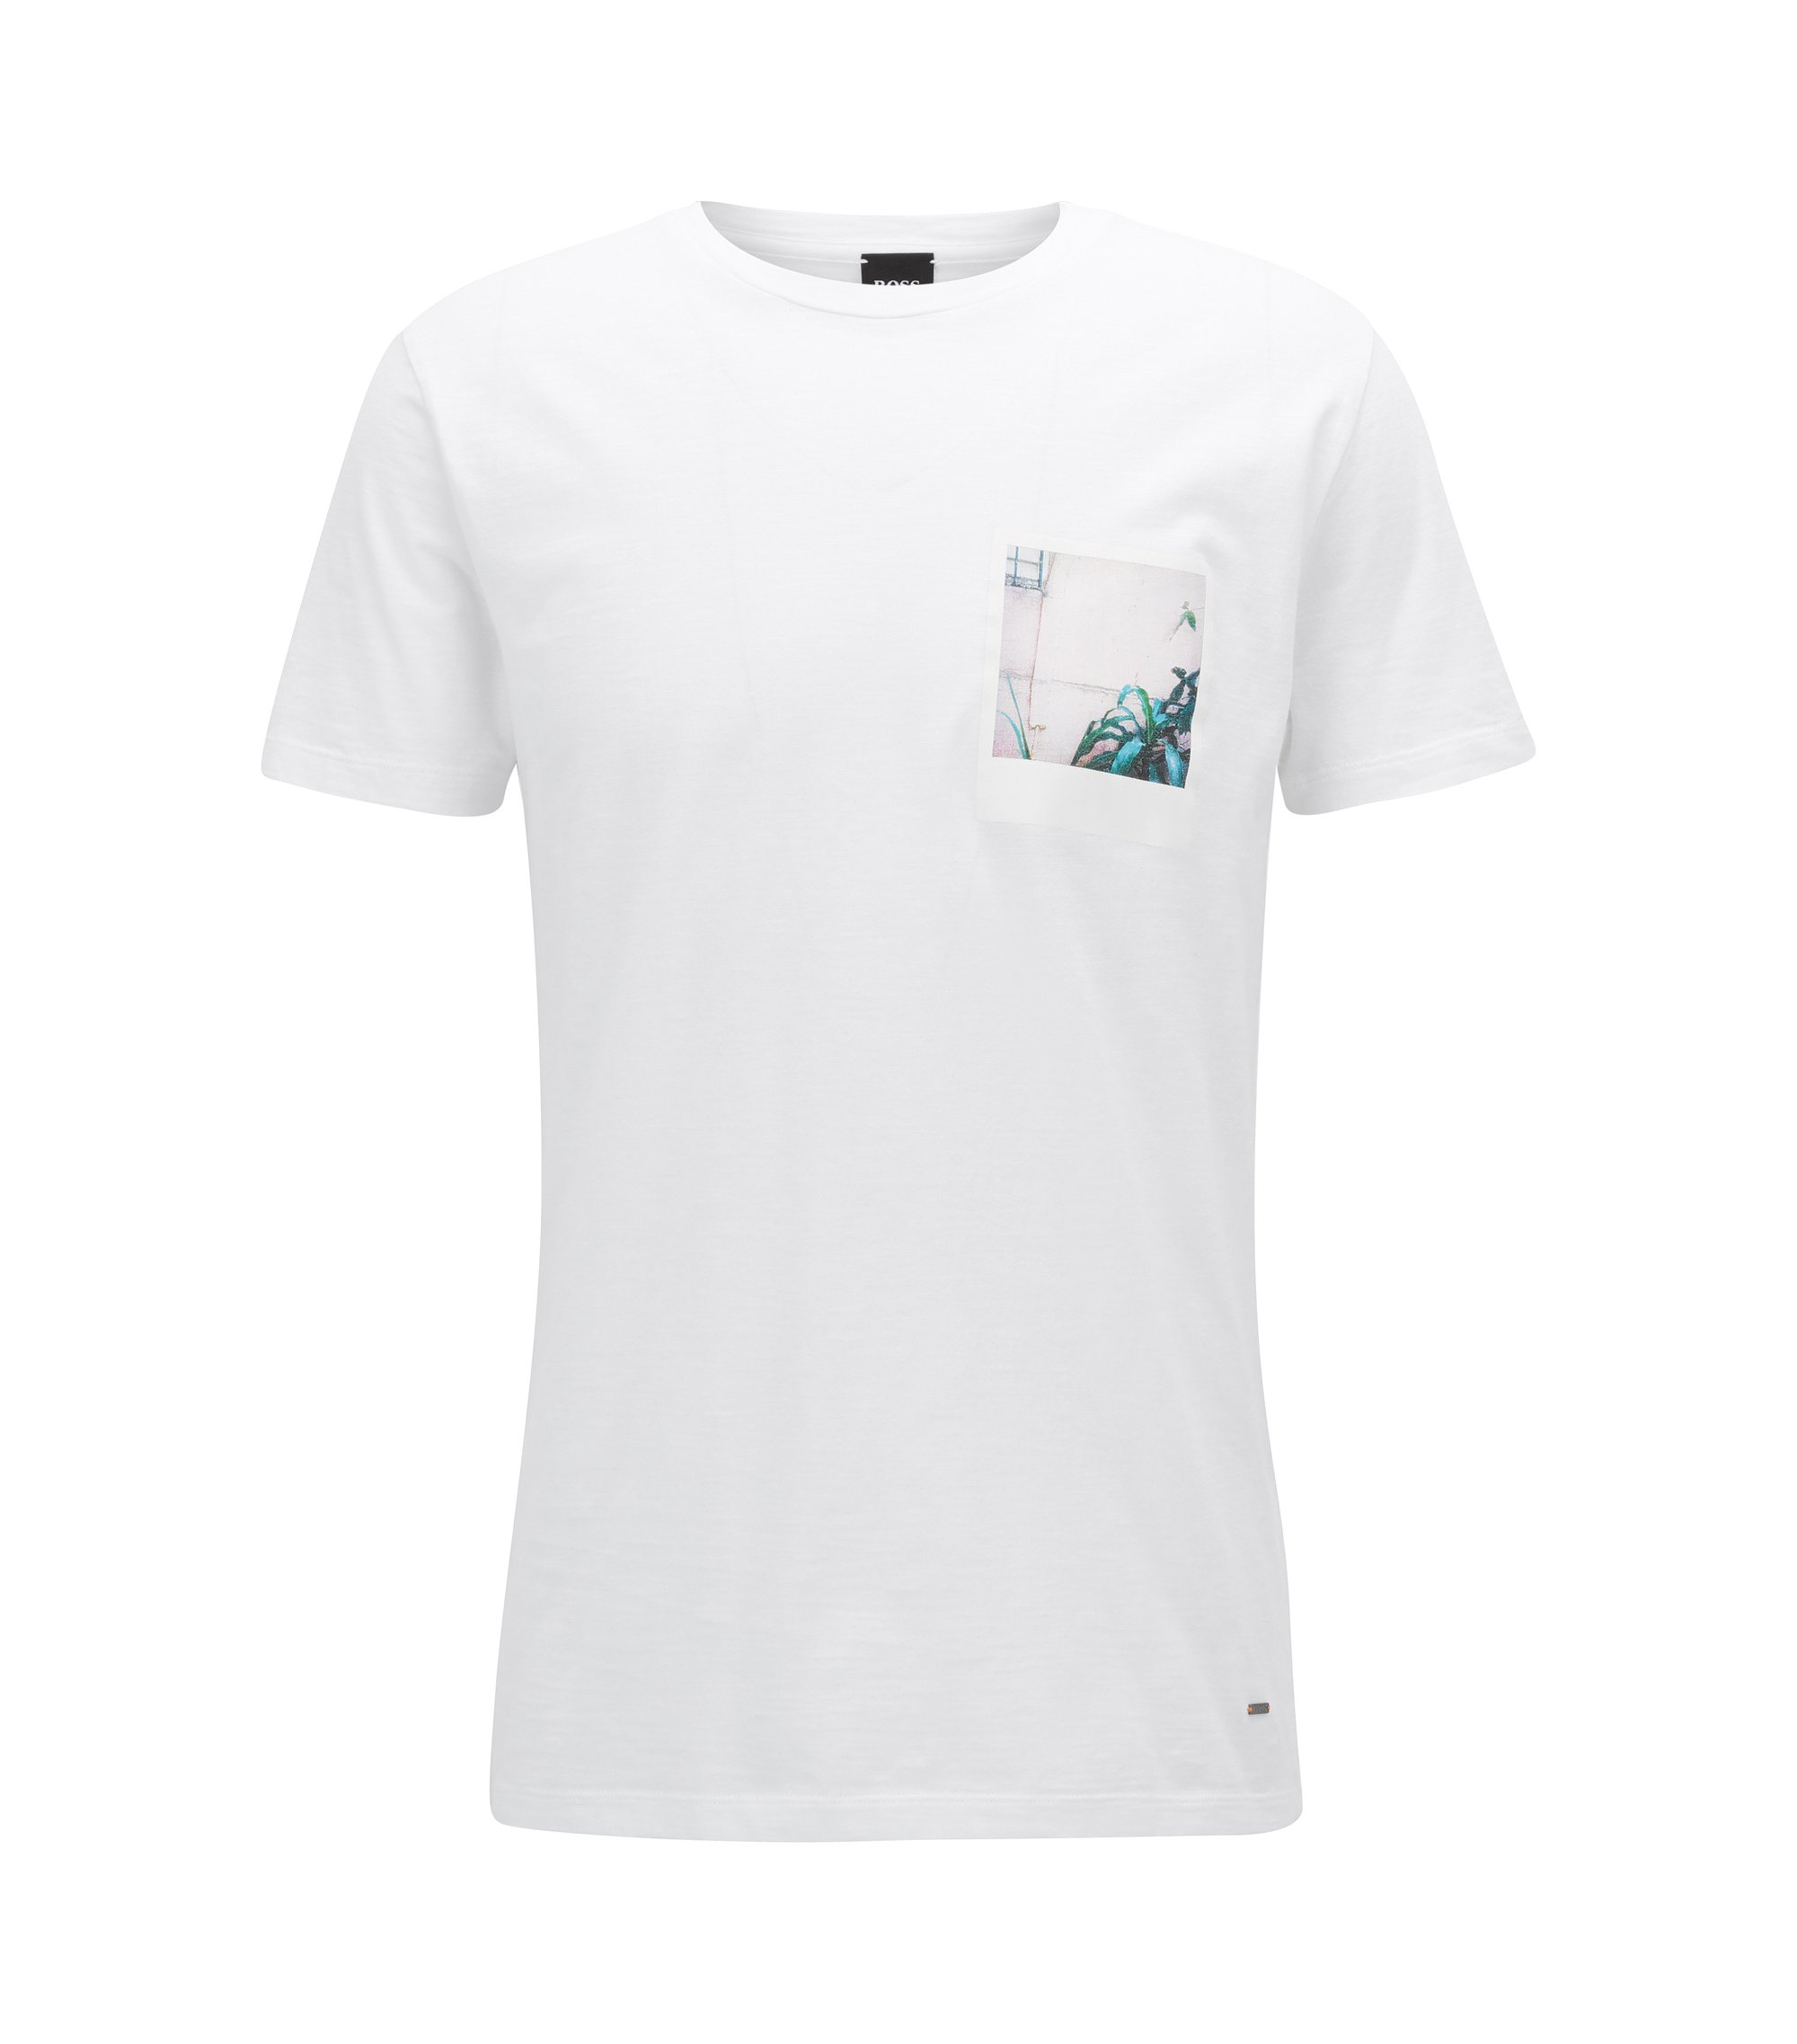 T-shirt Relaxed Fit en coton flammé à imprimé photo, Blanc